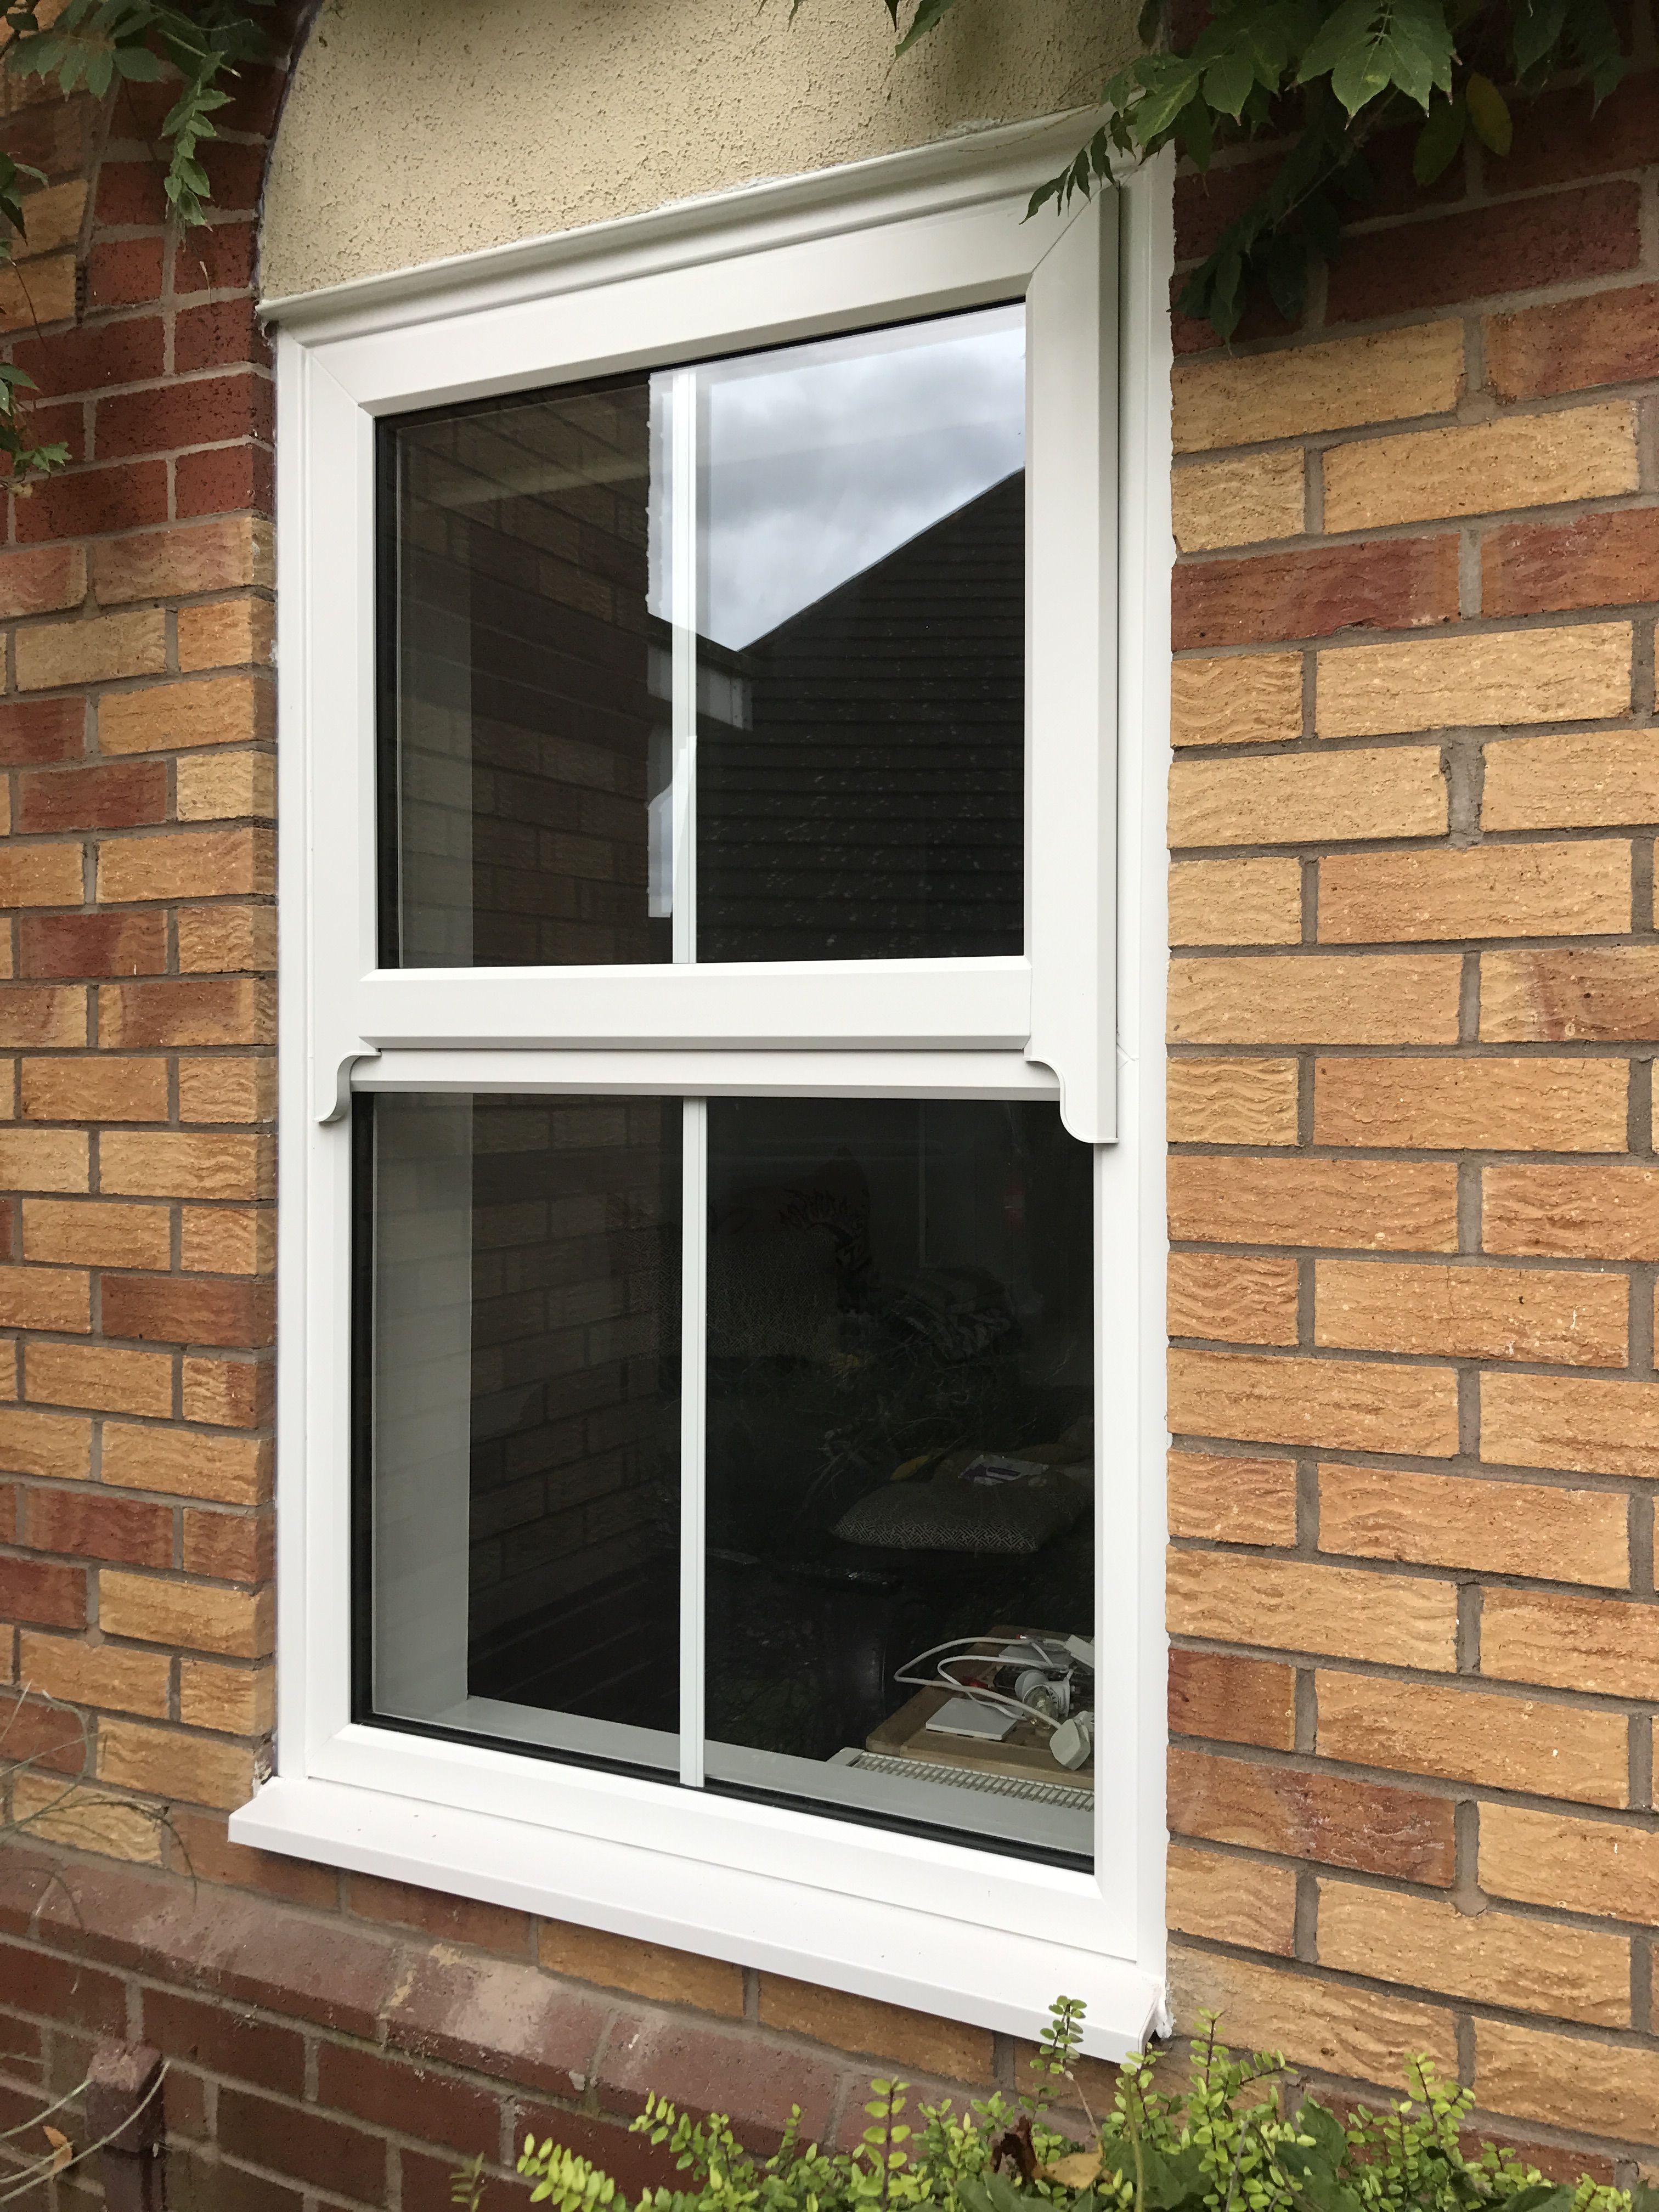 Upvc A+2 Rated Casement Window With Integral Mock Sash Horns